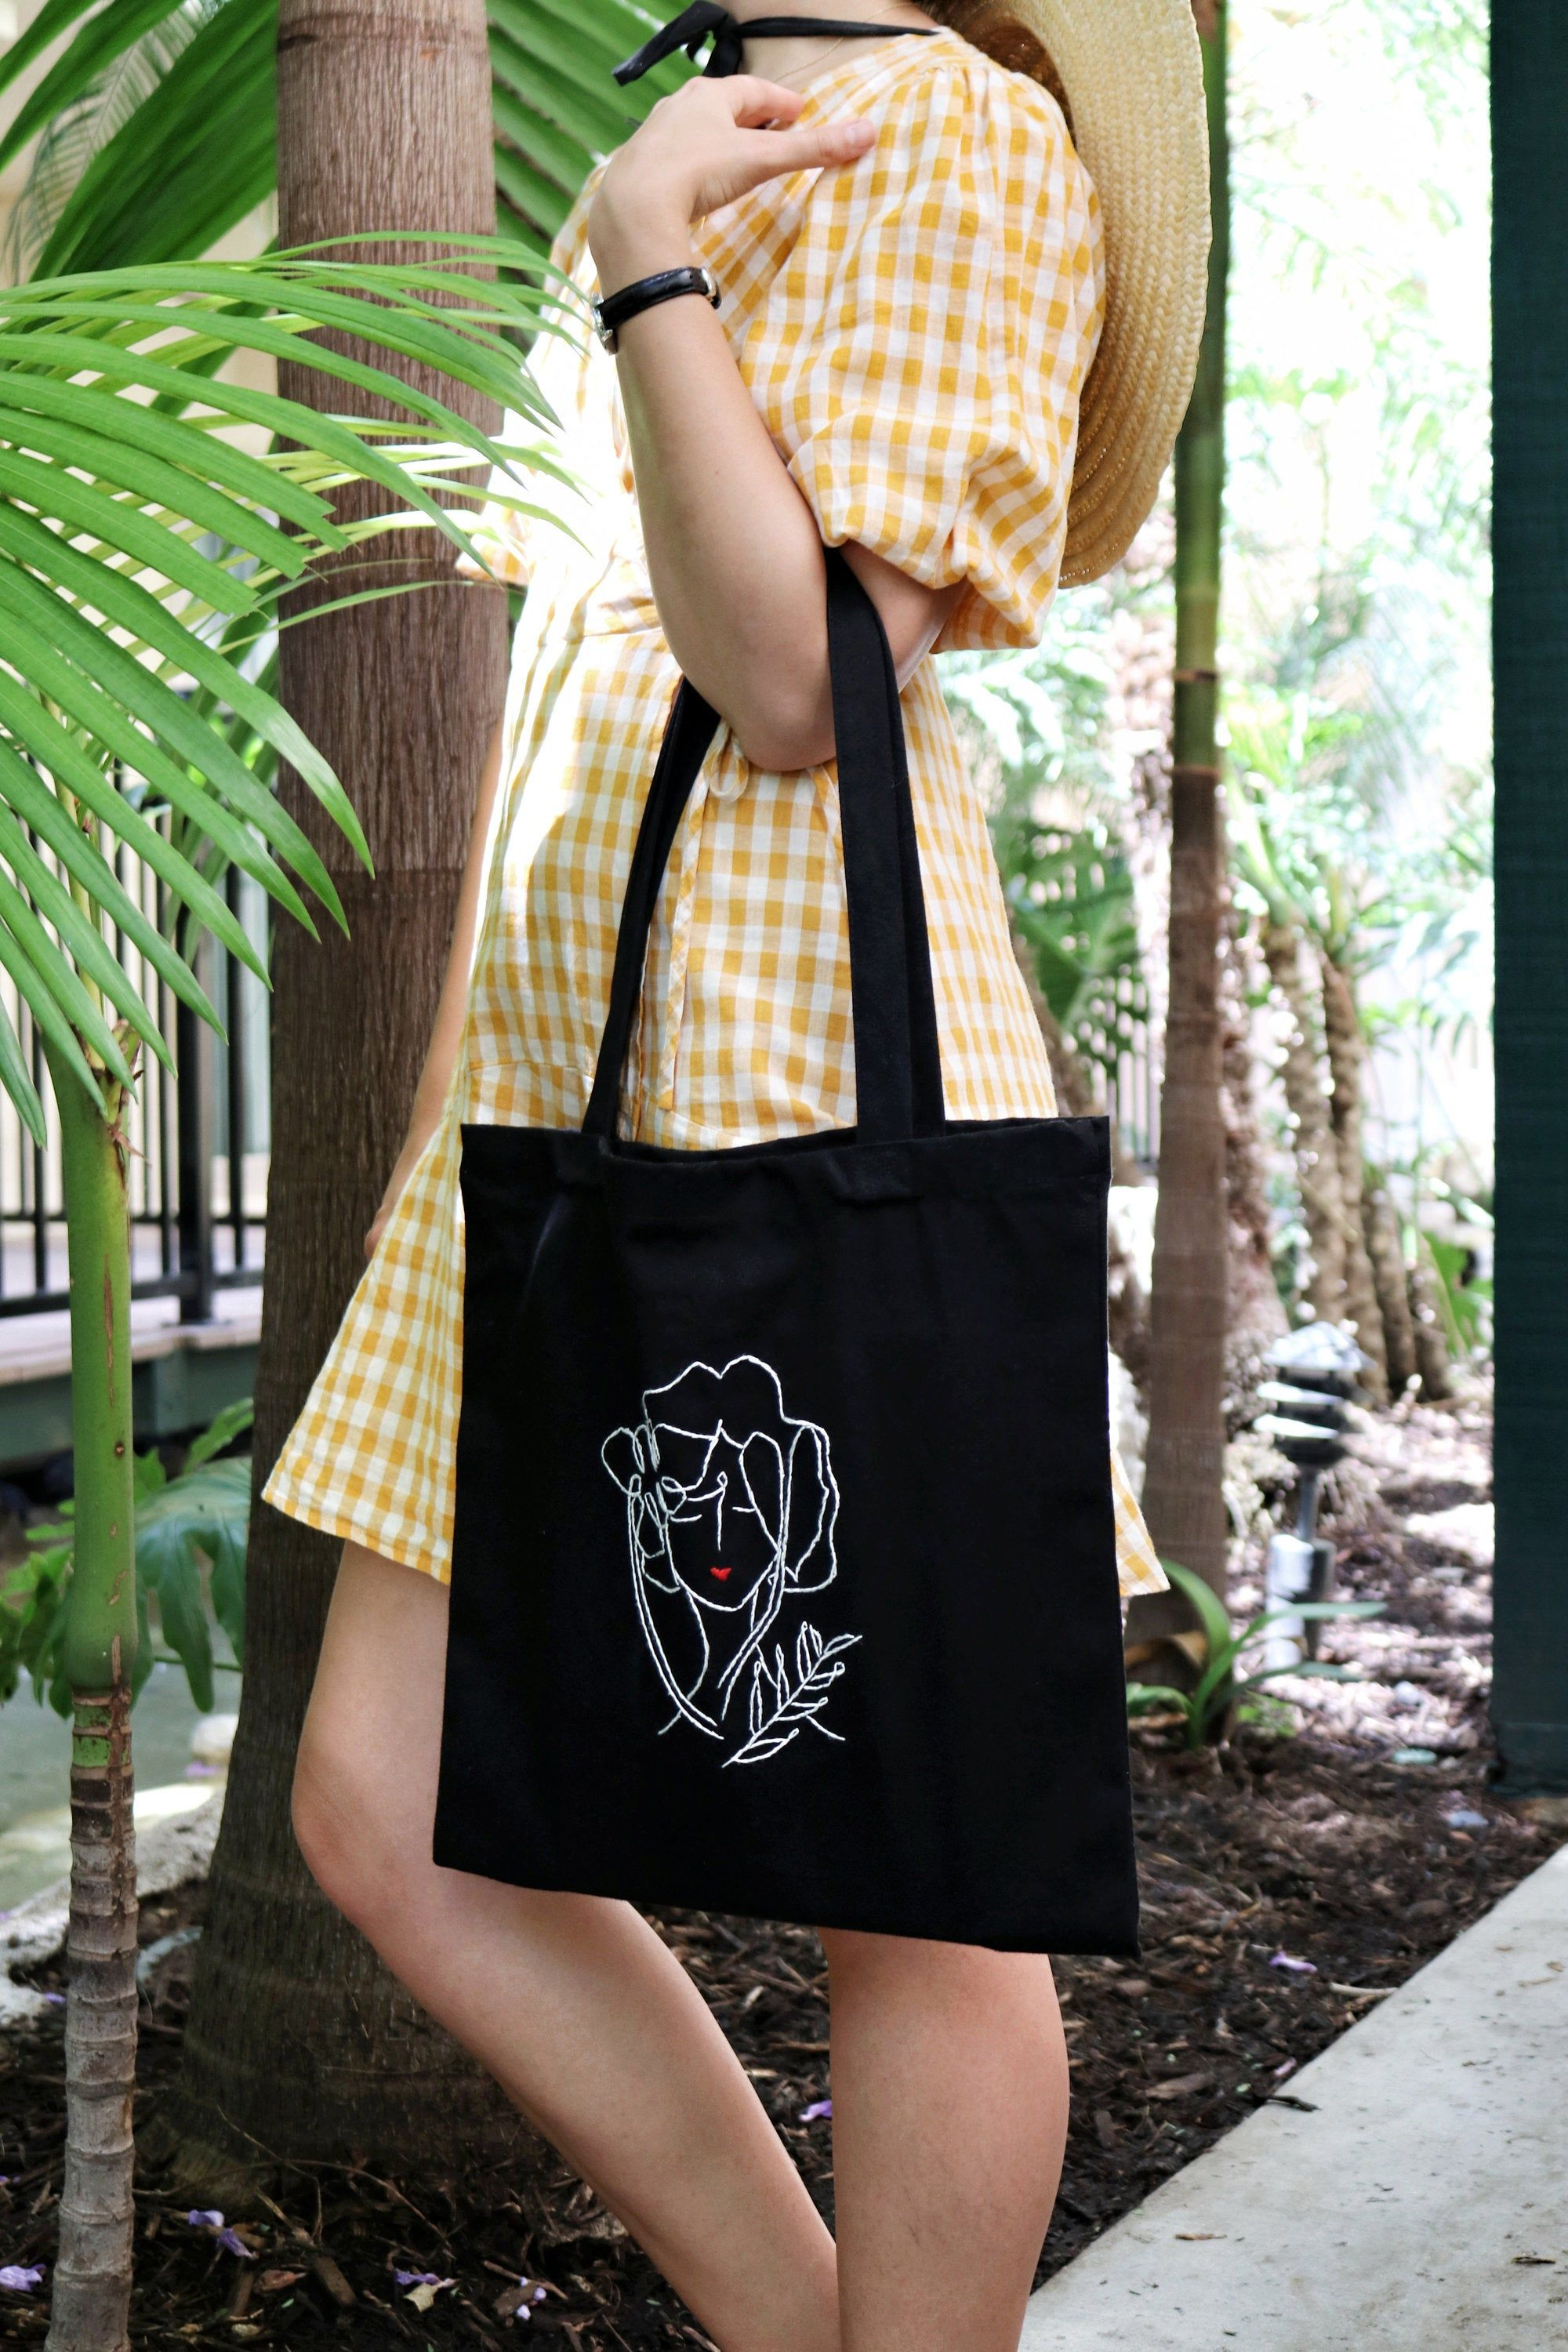 Tote bag with flowers floral pattern Handmade eco-friendly fabric Fall outfit ideas Botanical Embroidered tote bag linen hand bag